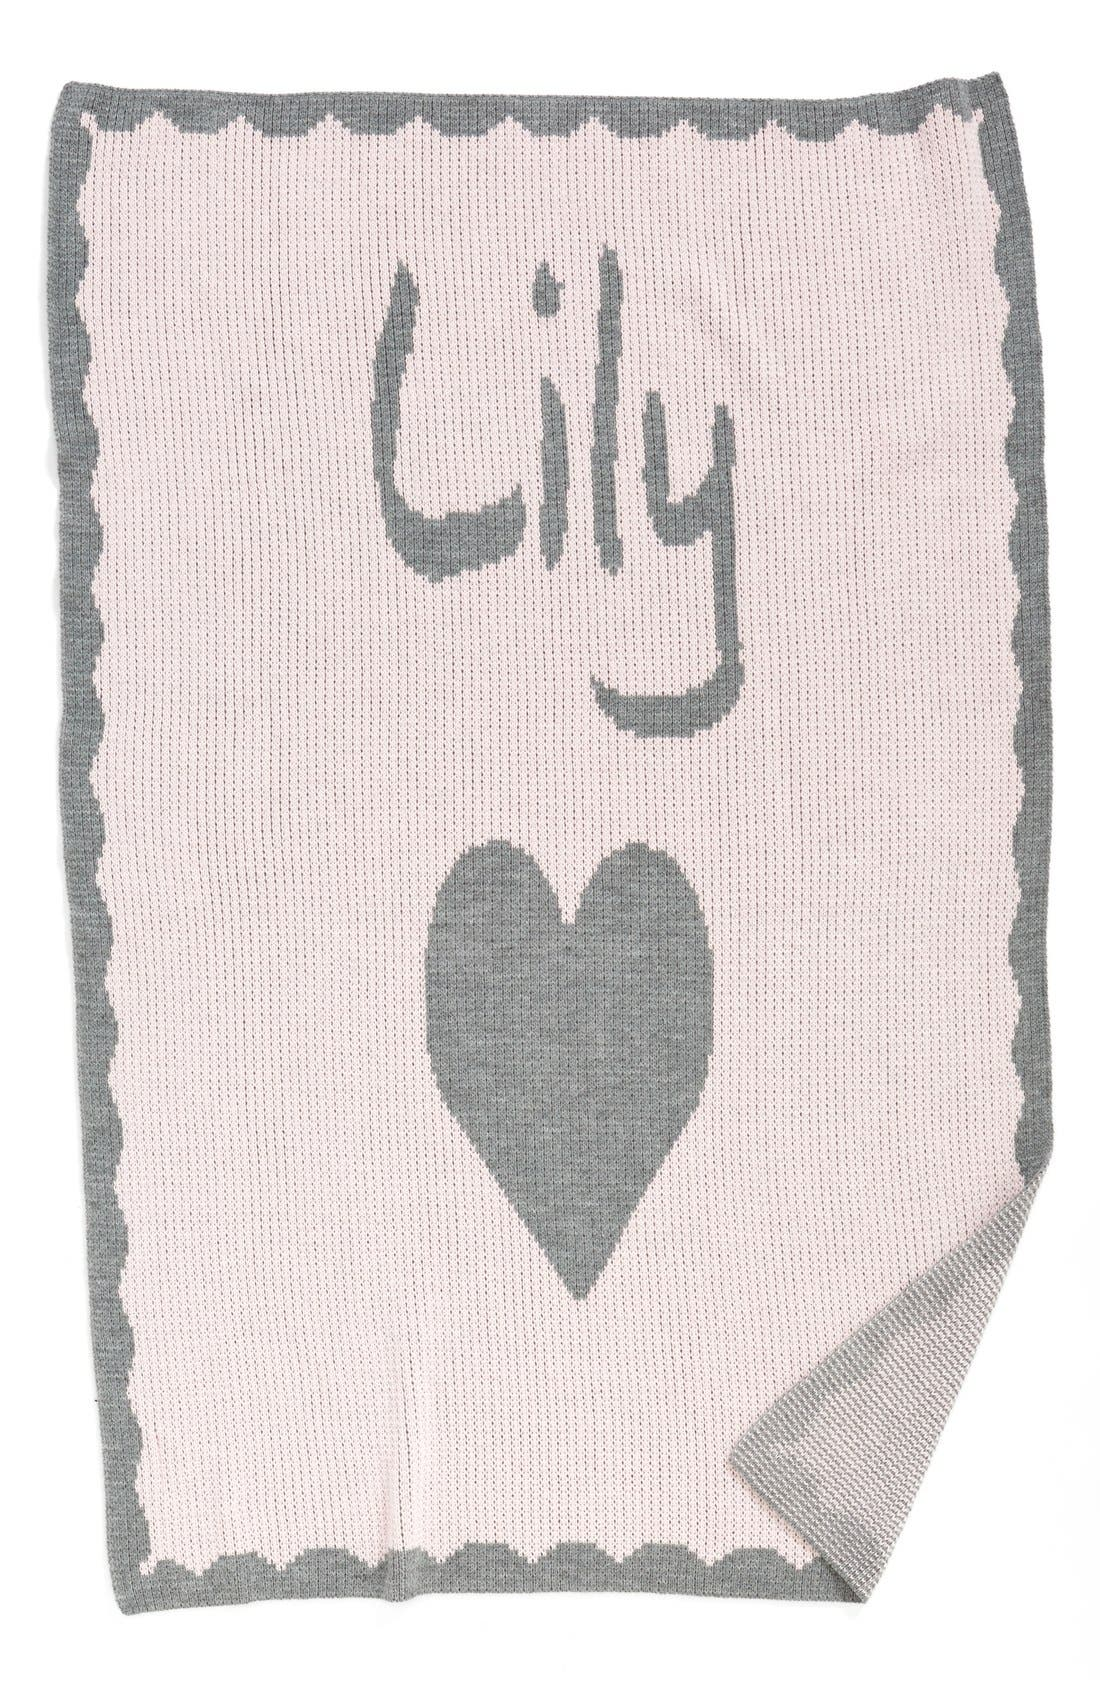 Alternate Image 1 Selected - Butterscotch Blankees 'Heart' Personalized Crib Blanket